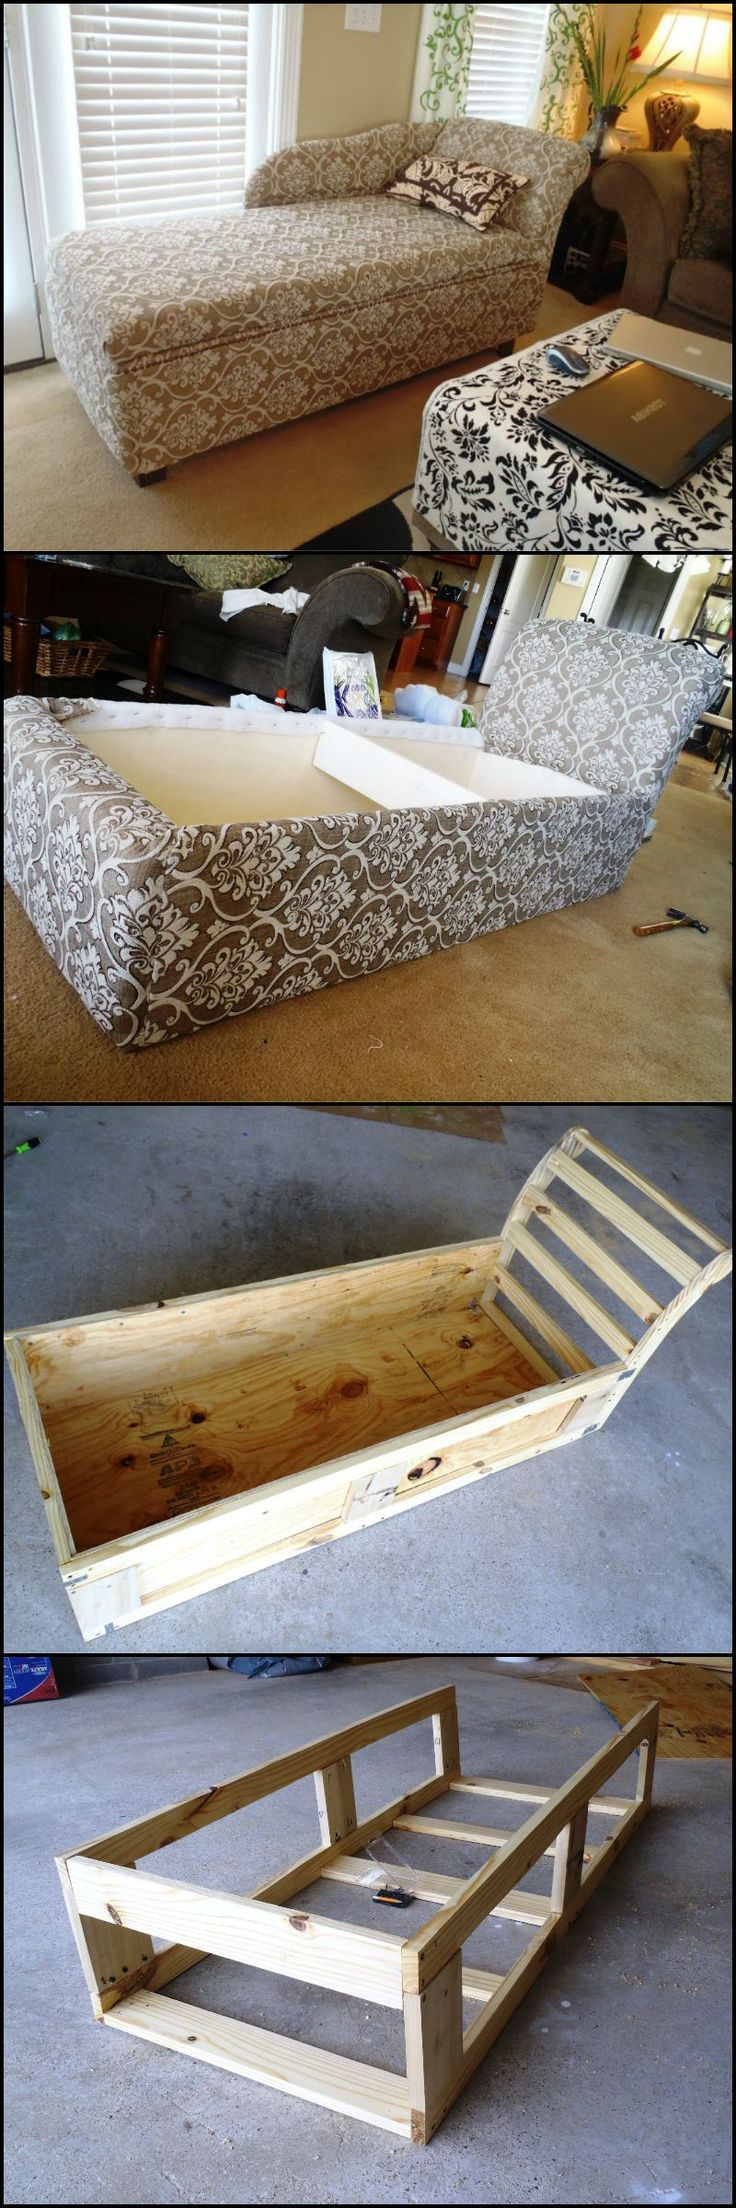 How To Build A Chaise Lounge With Extra Storage Space theownerbuilderne... We're glad we came across this chaise lounge. It's built with a simple frame, comfortable and a perfect place for keeping a great amount of stuff.